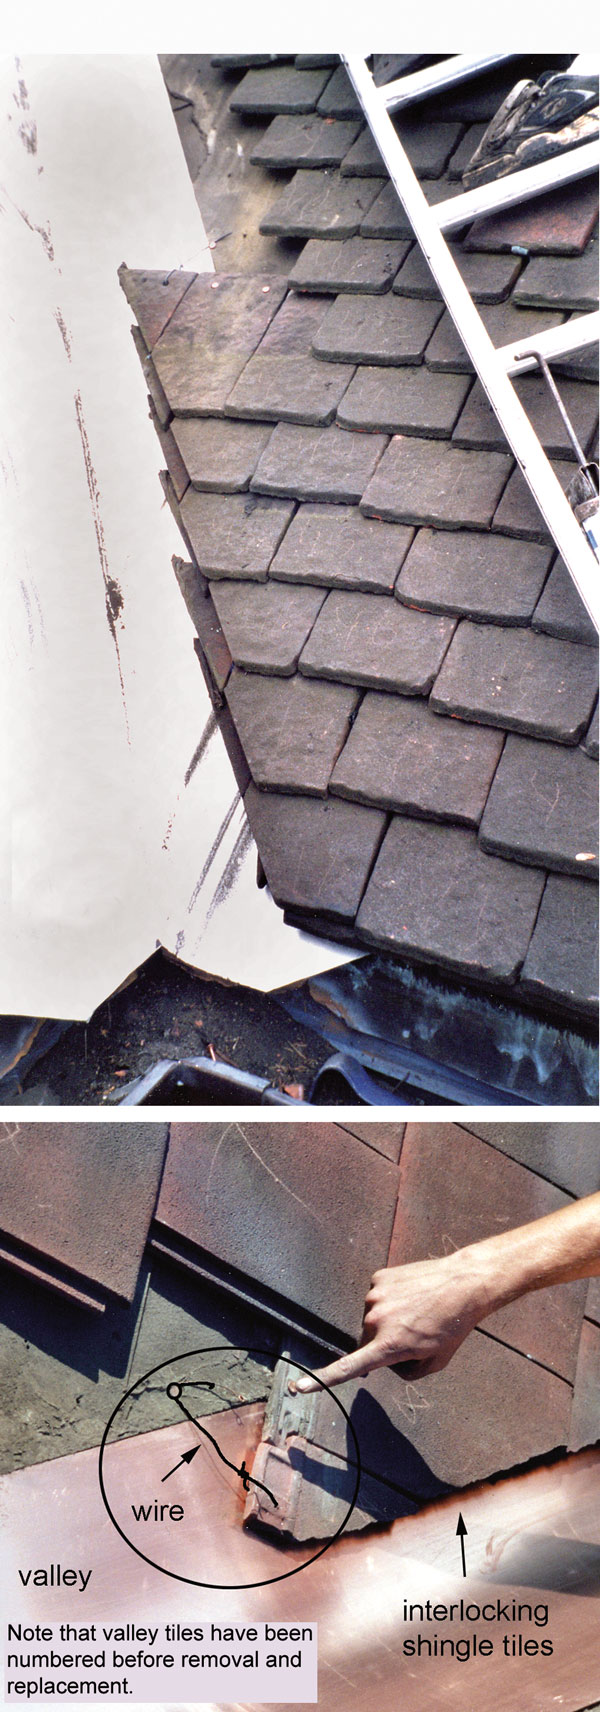 Replacing a valley on a clay tile roof.